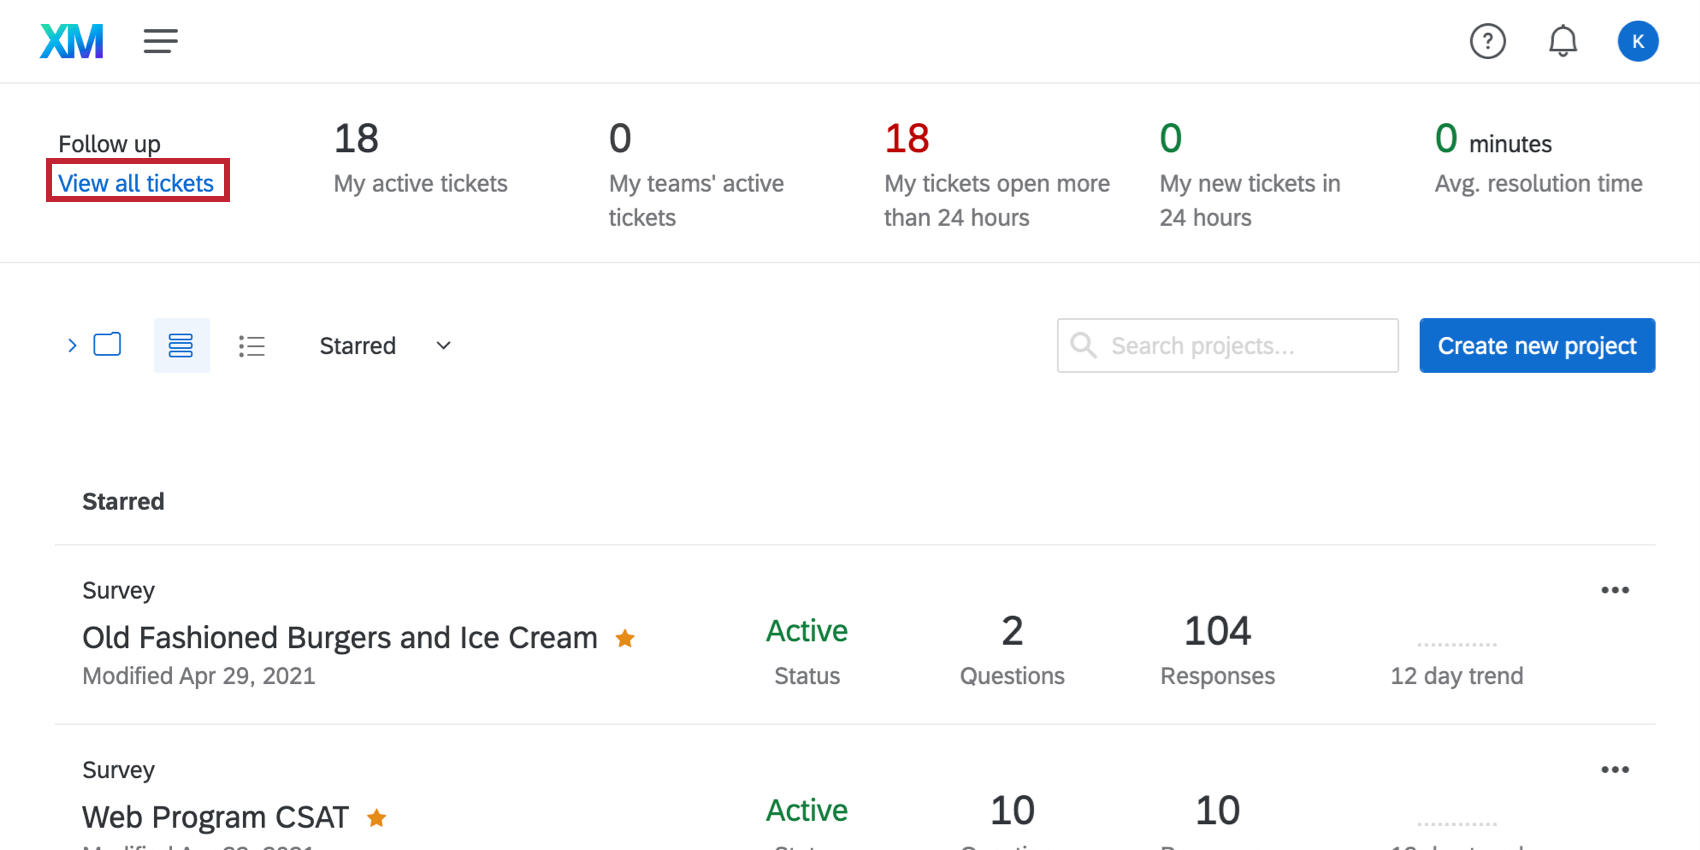 On the Qualtrics Projects page. The top bar says follow up in big font. Underneath in blue is says view all tickets, which is highlighted, telling you to click it